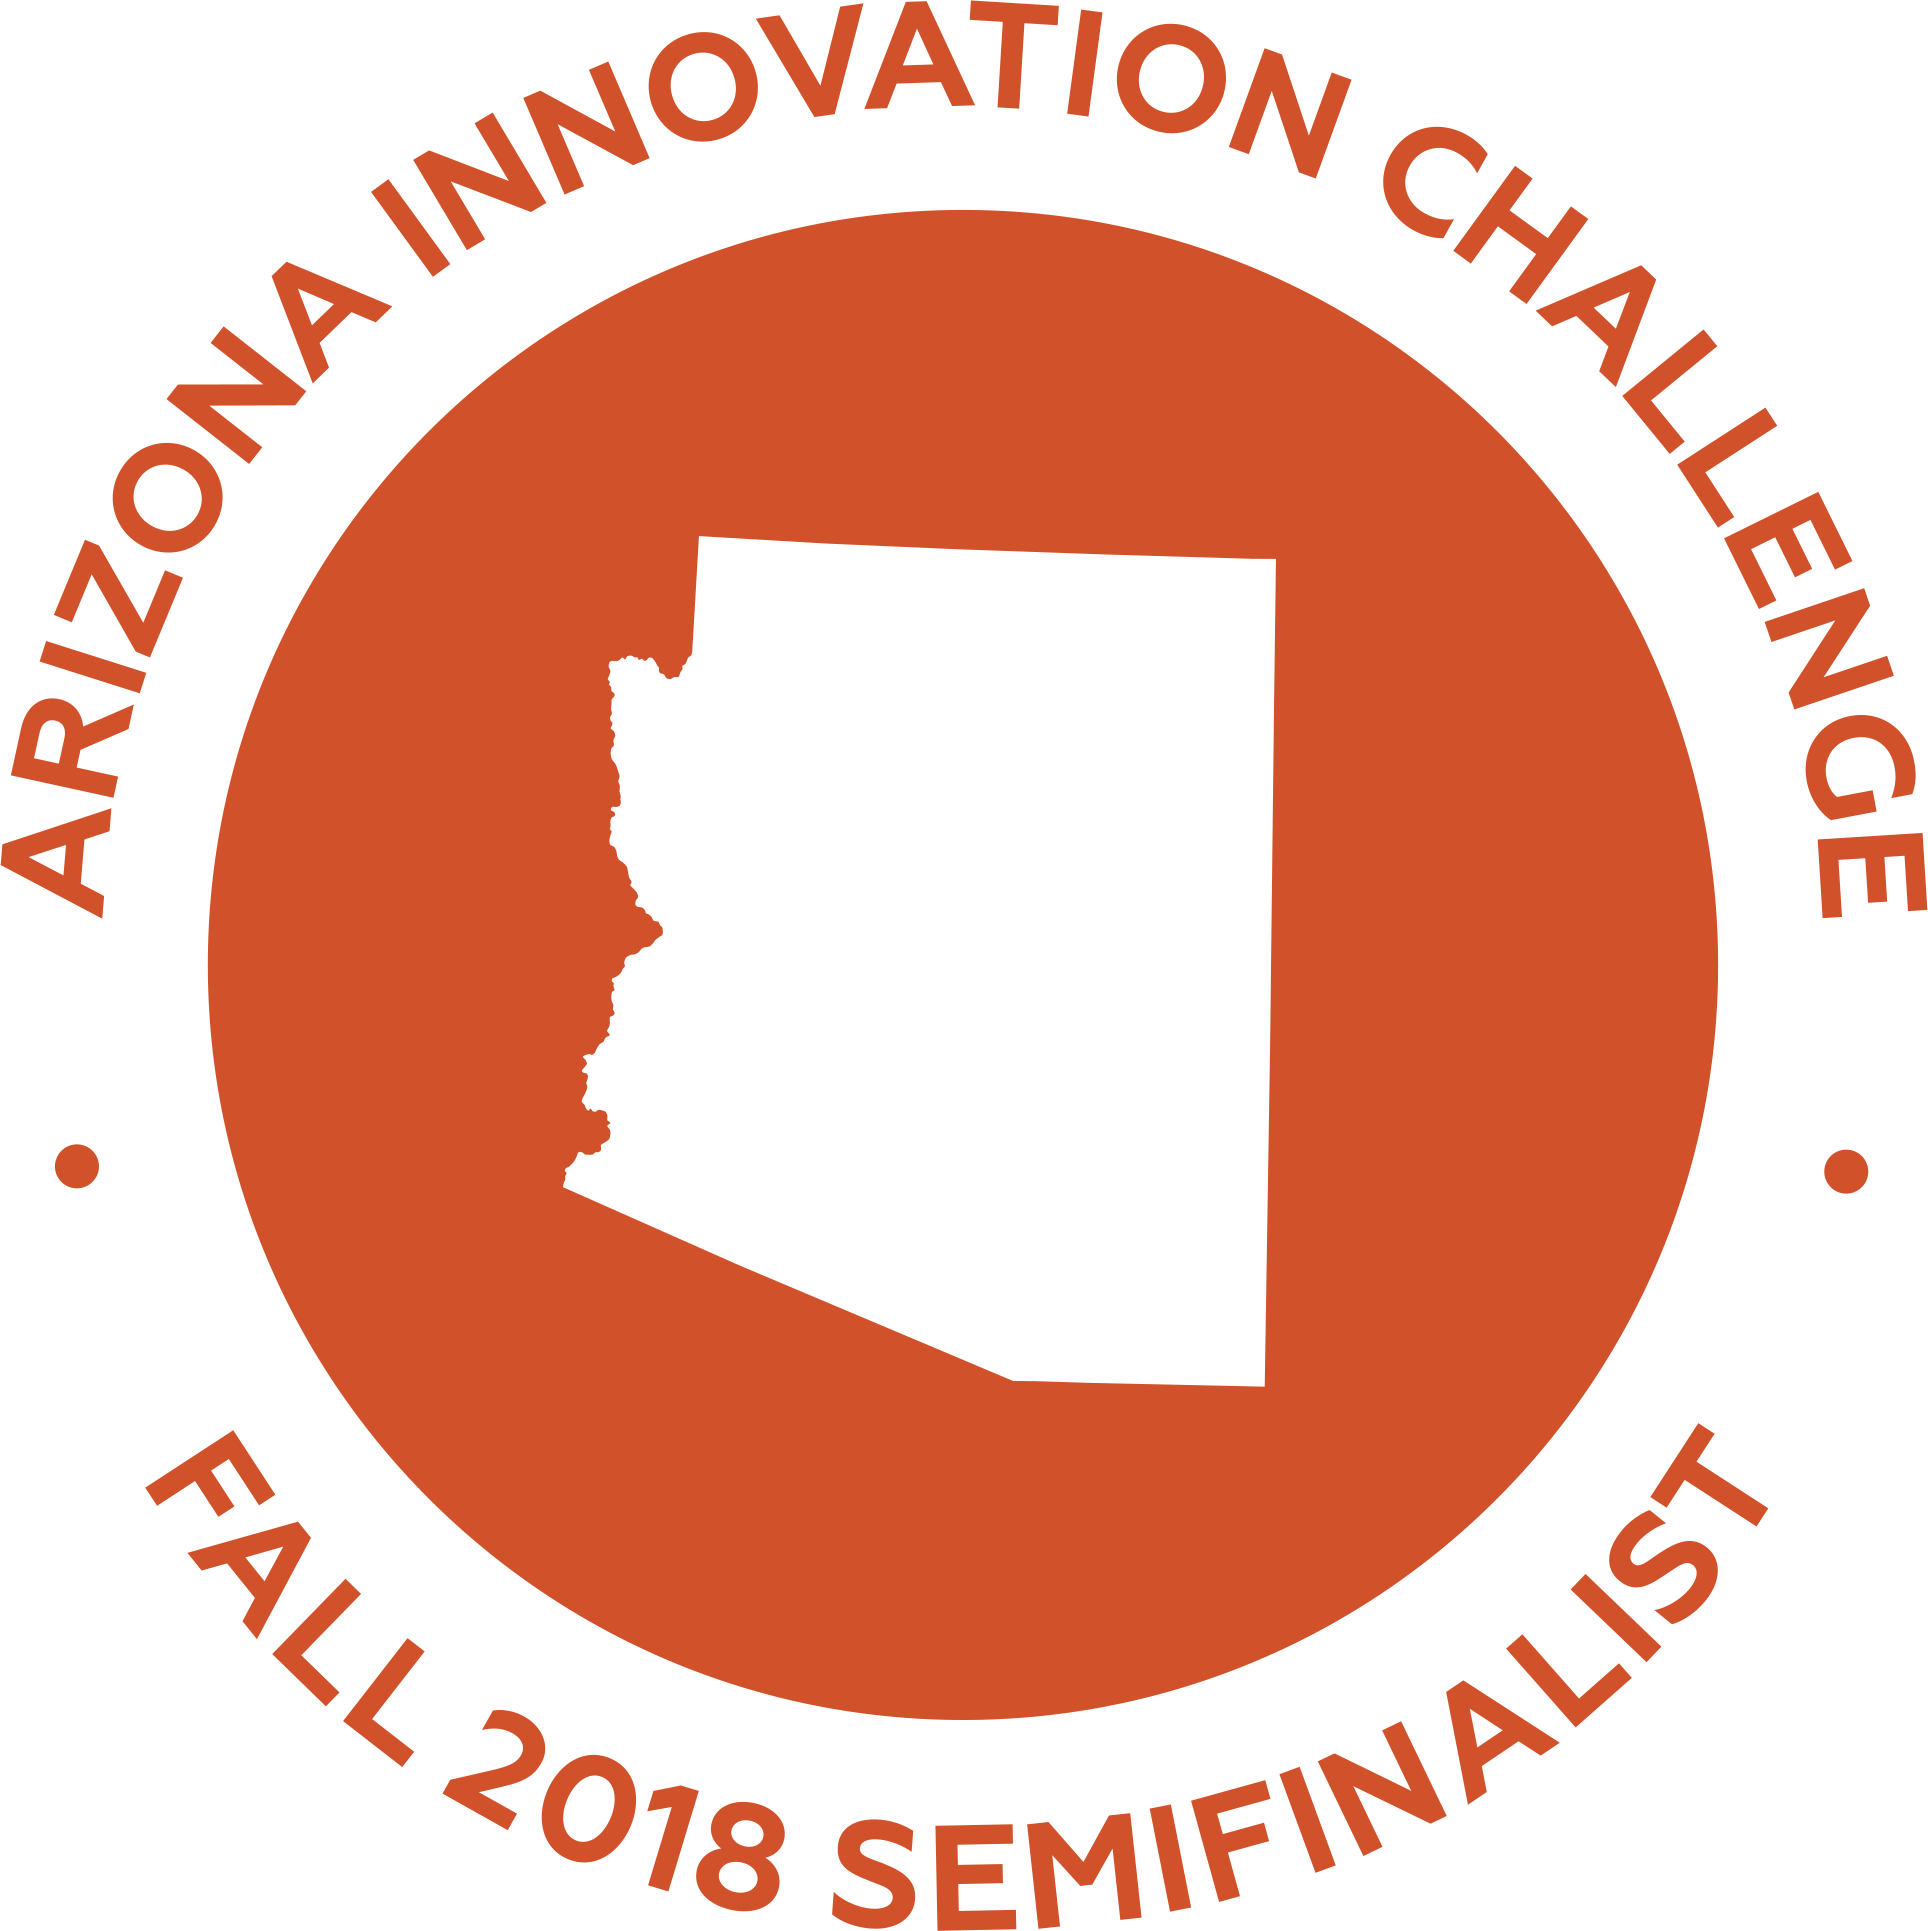 AIC Fall 2018 Semifinalist Badge.png